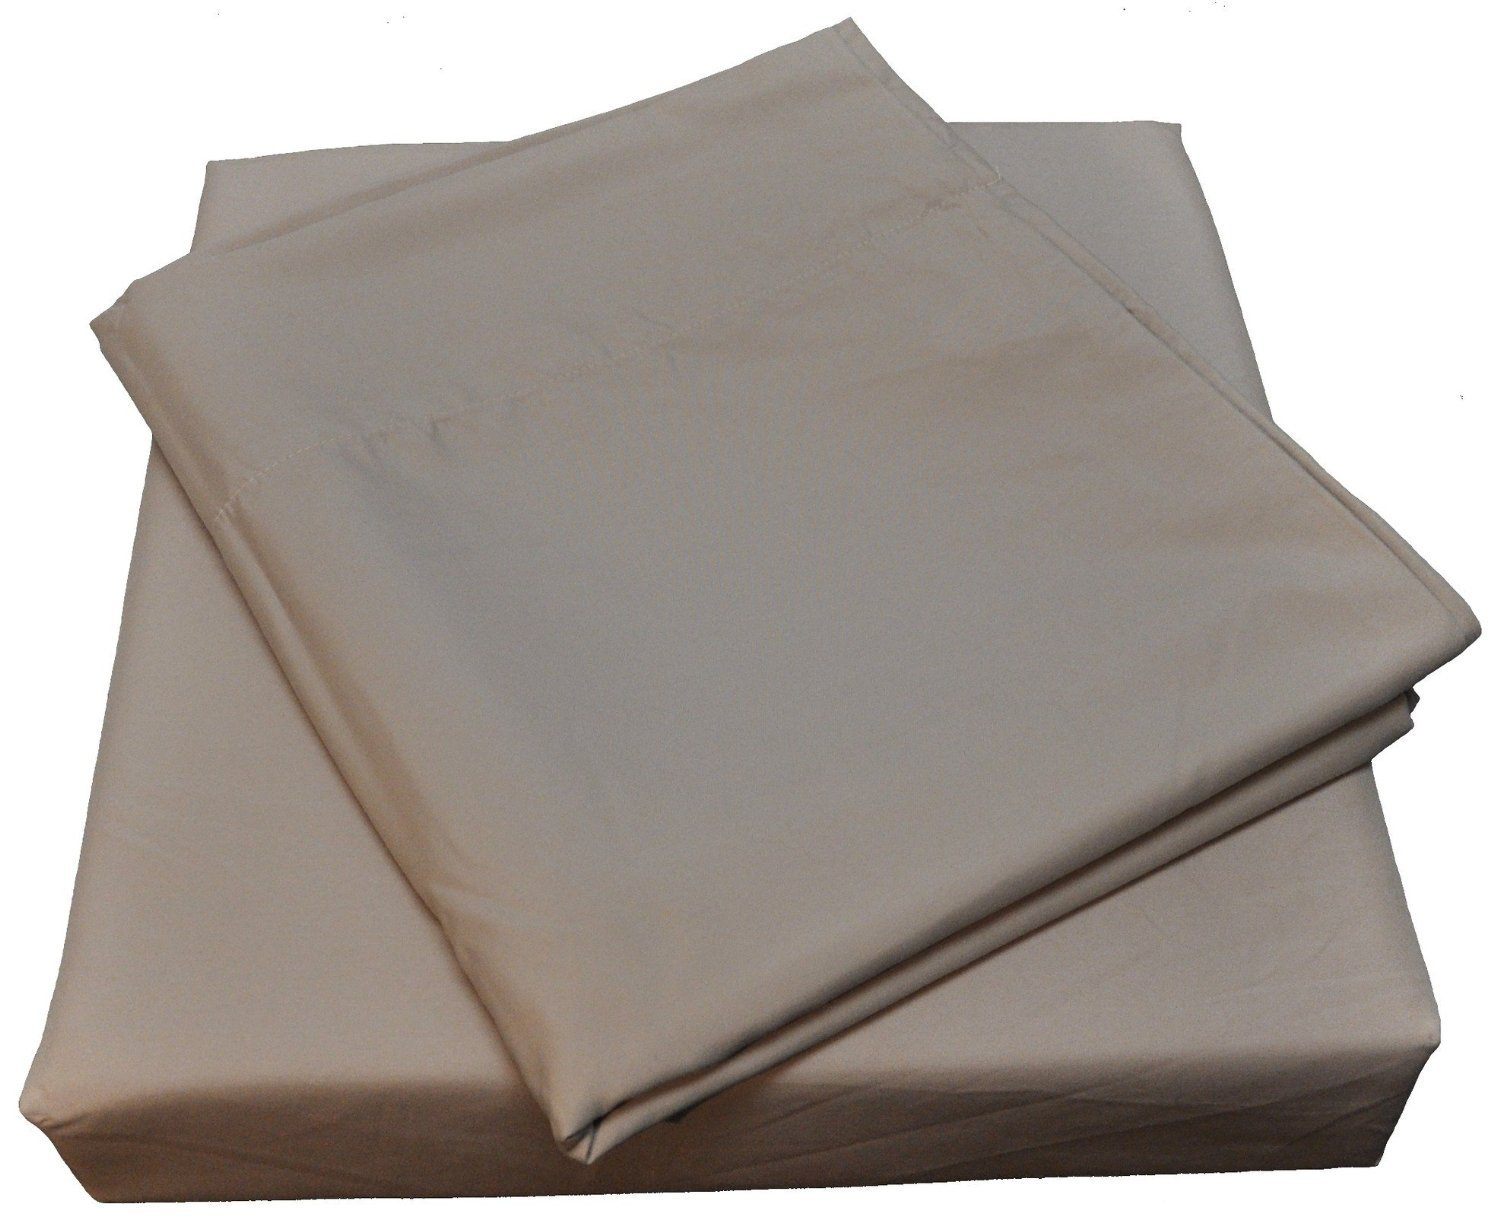 Nouvelle Legende Microfiber Spa Quality Bed Sheet Set, Full Size, Tan (4-Pieces)